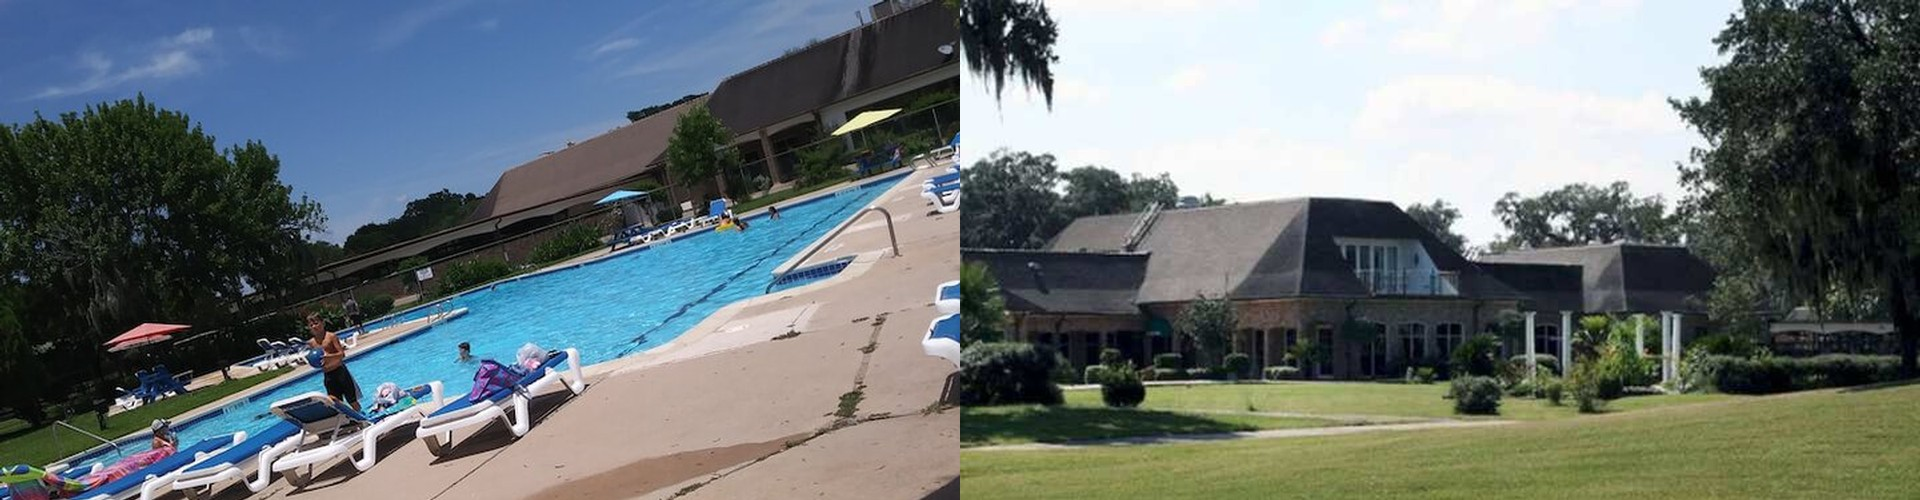 Americas Best Value Inn West Columbia Best Things To Do In West Columbia Tx Stuff To See